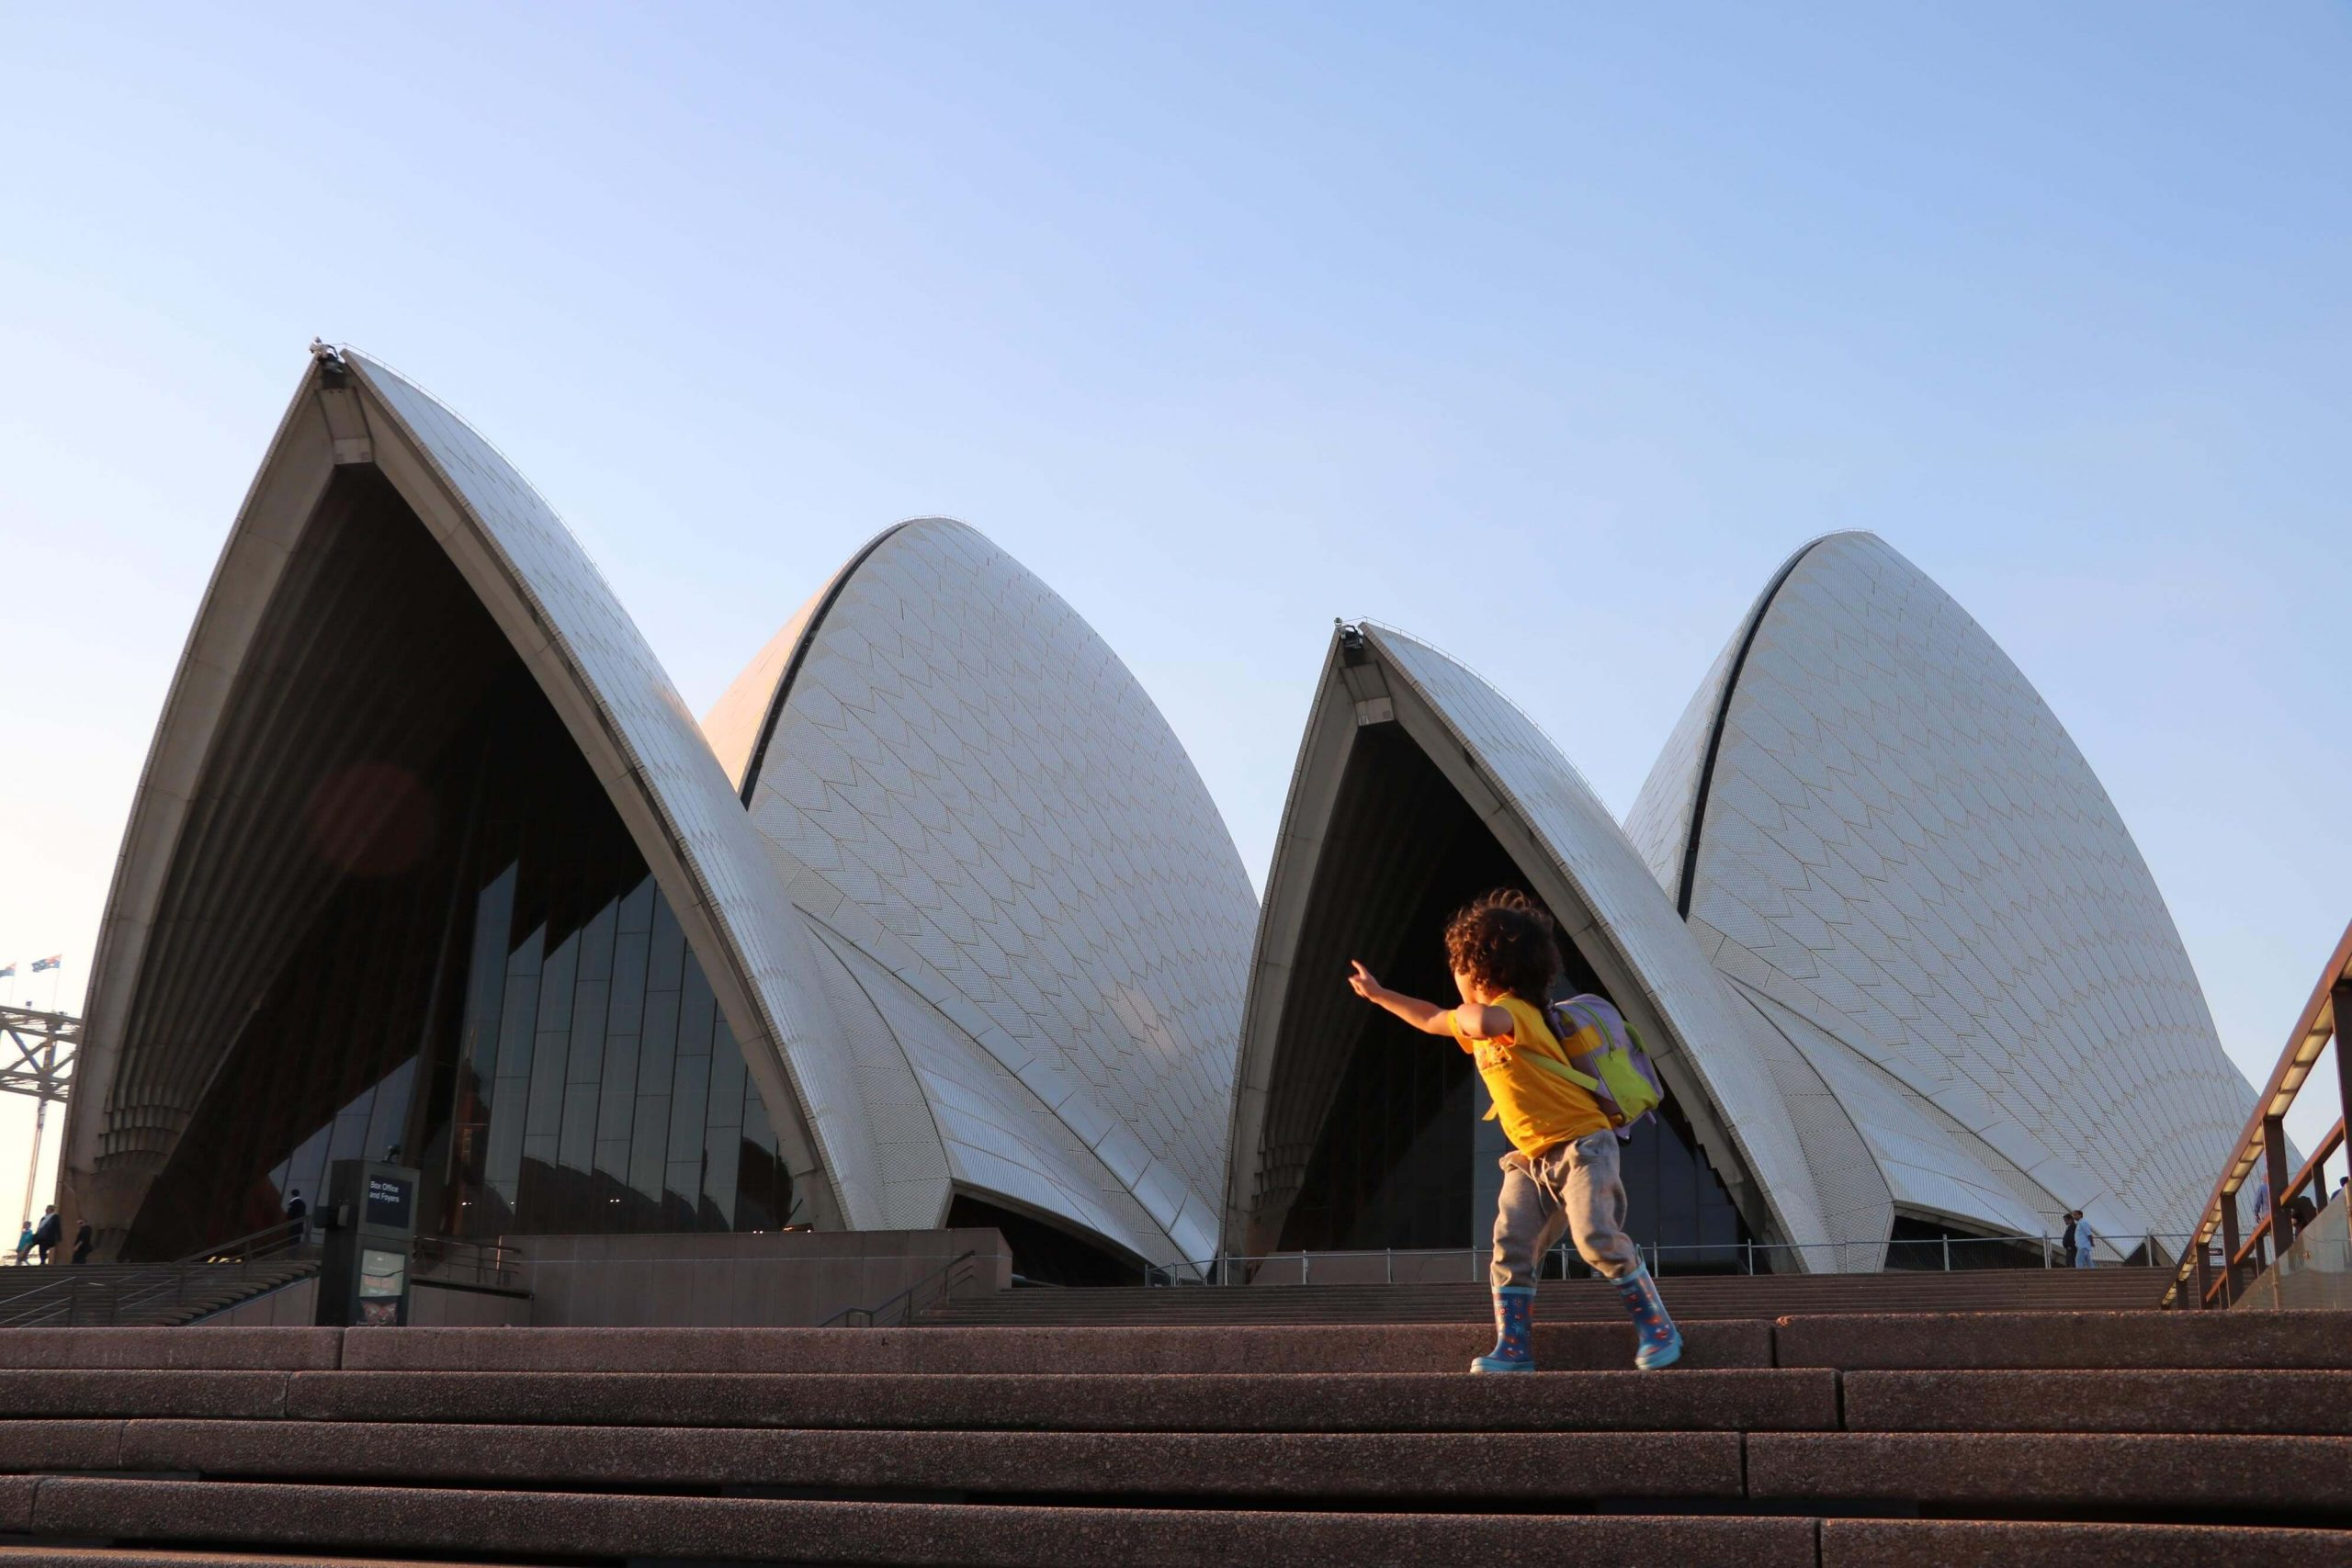 facts about Sydney Opera house for kids